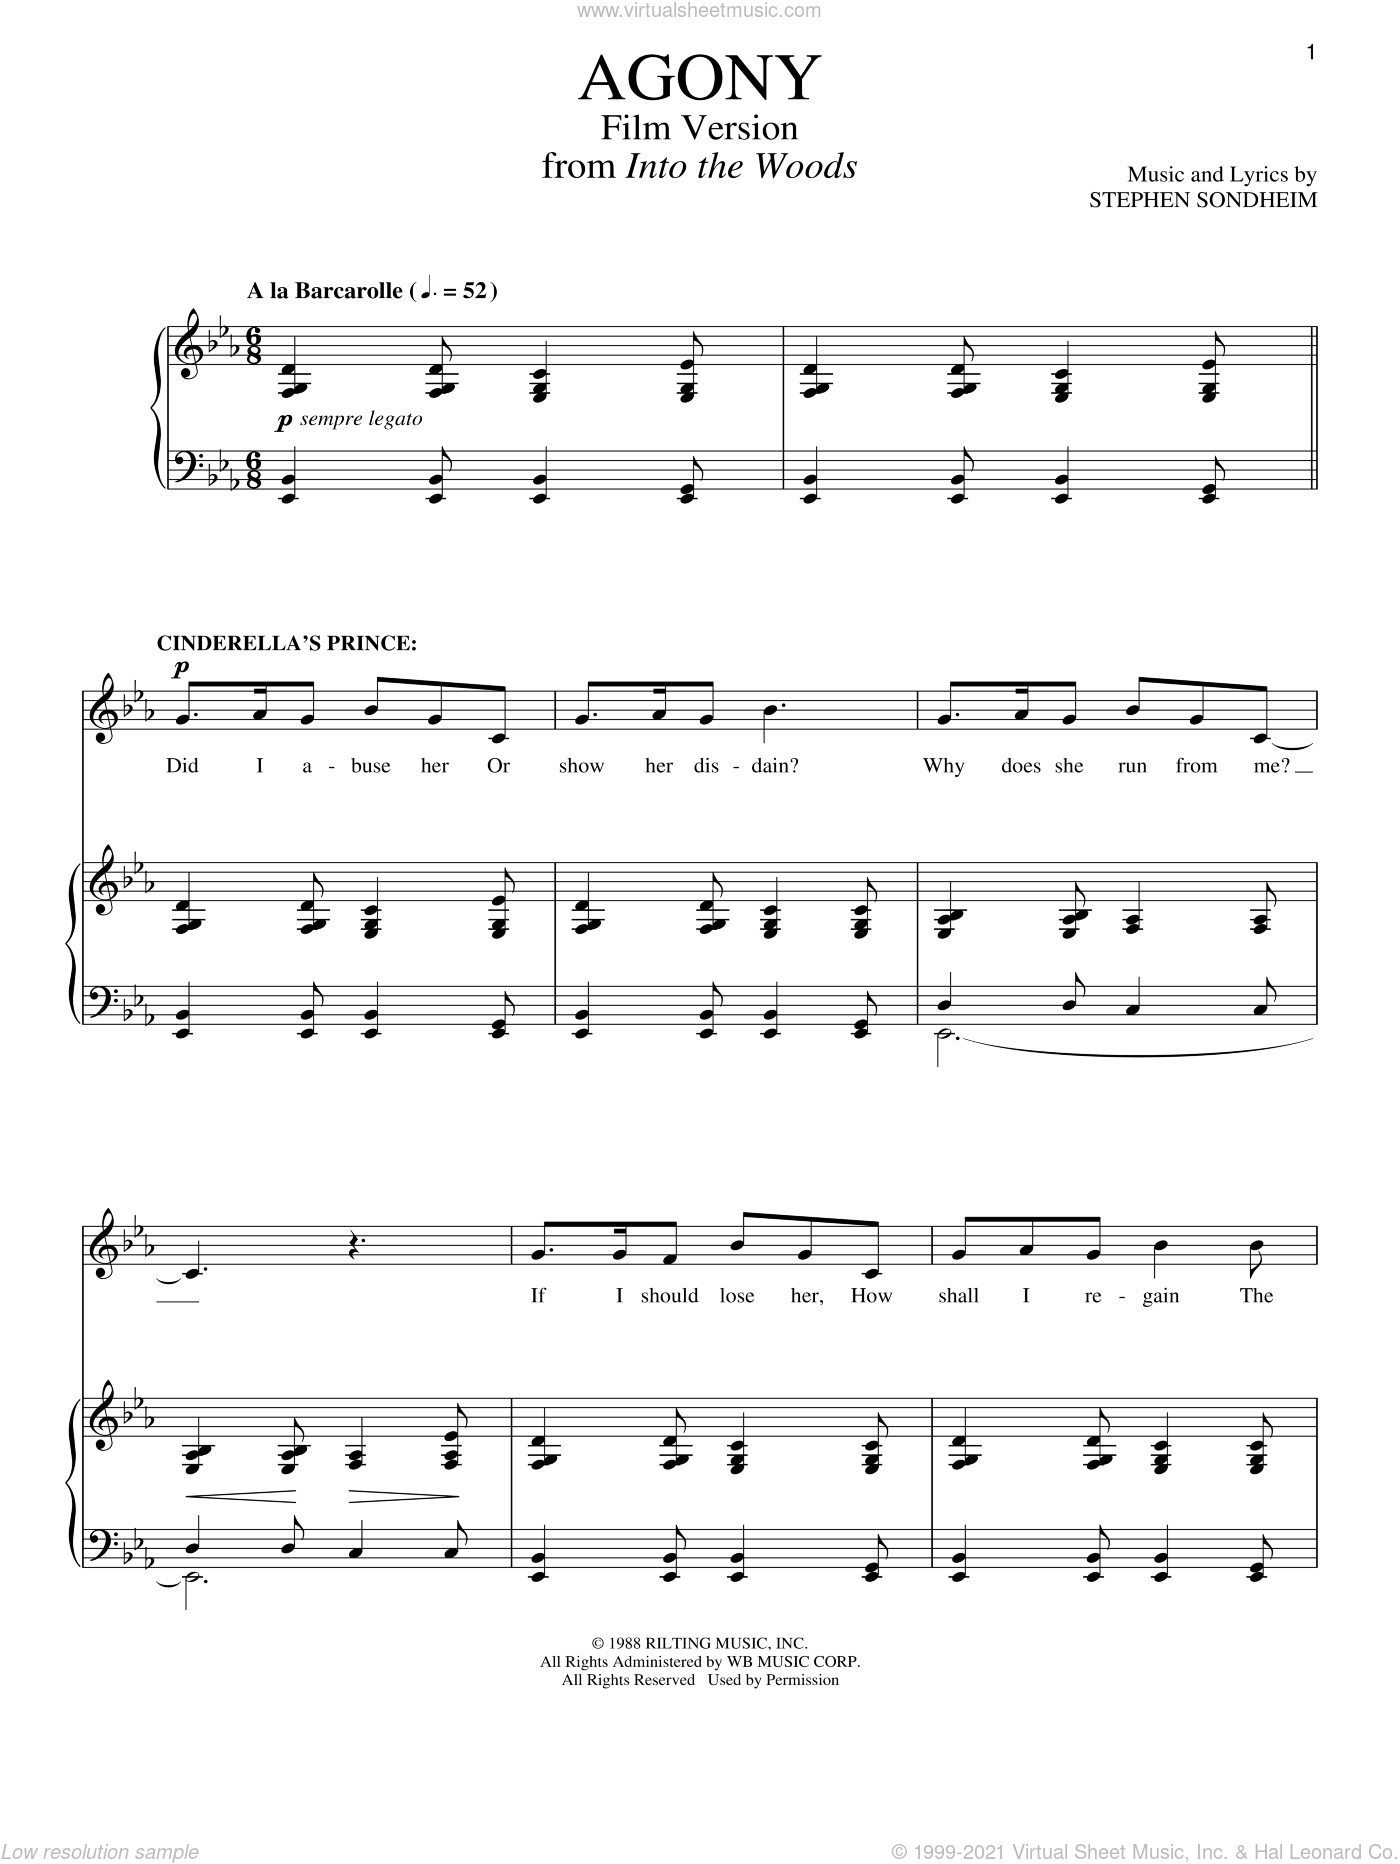 Agony (Film Version) sheet music for voice and piano by Stephen Sondheim, intermediate skill level